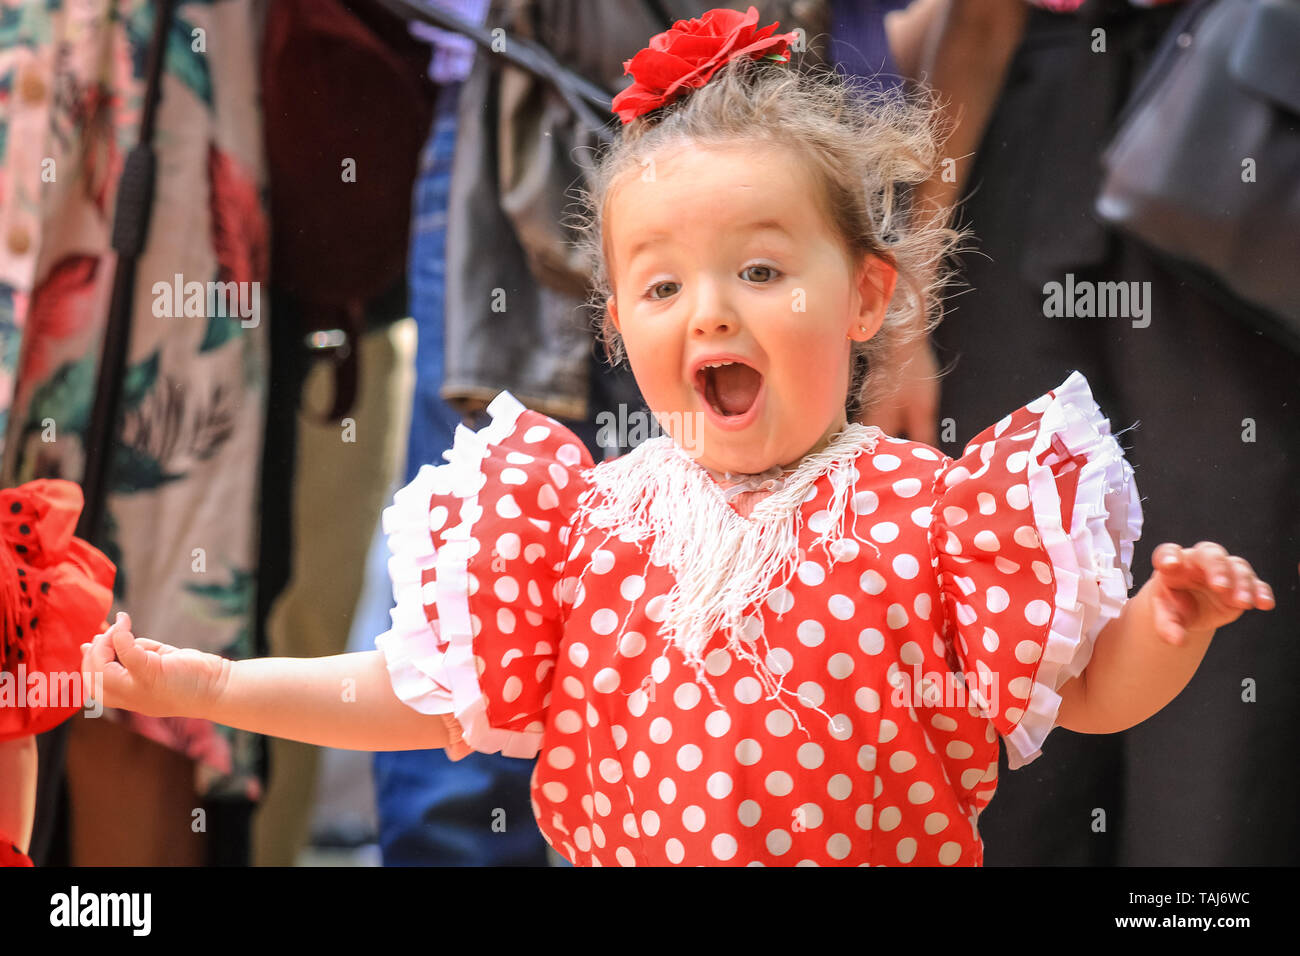 South Bank, London, UK - 25th May 2019. A young girl practices her first flamenco steps. [guardian asked for permission to photograph] The Feria de Londres is a free festival on London's South Bank presenting Spanish culture, dance, music, wine and food from May 24-26. Credit: Imageplotter/Alamy Live News - Stock Image